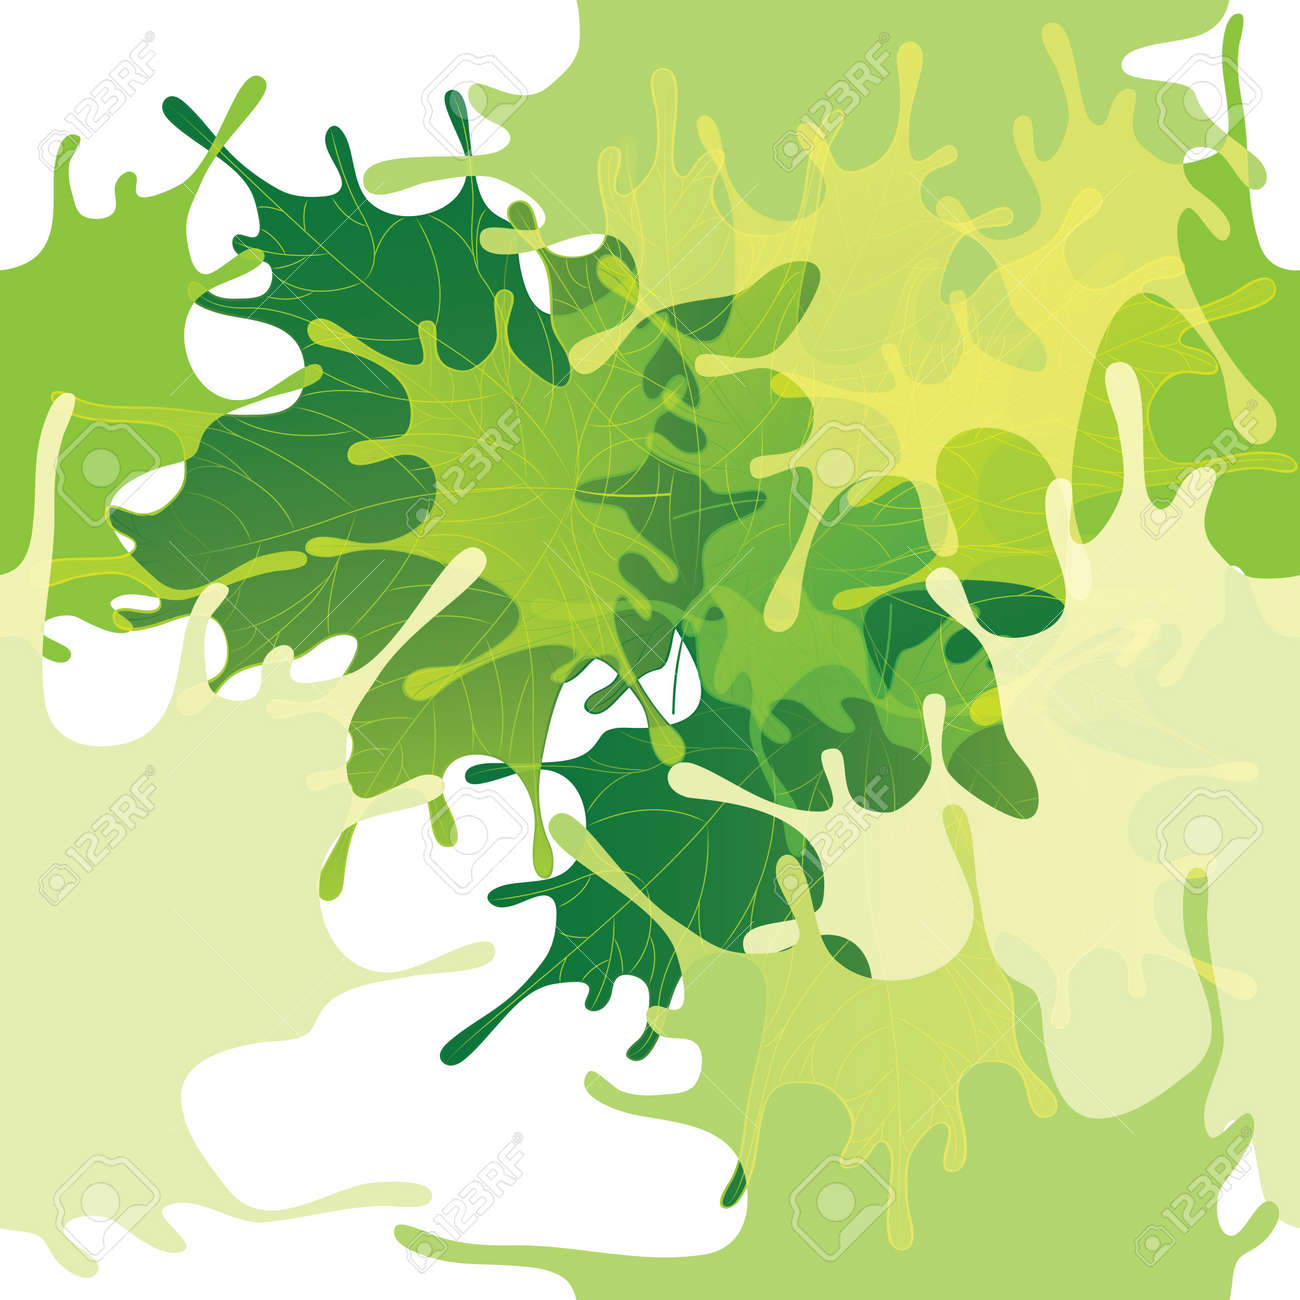 Seamless abstract leaves background - 14704449